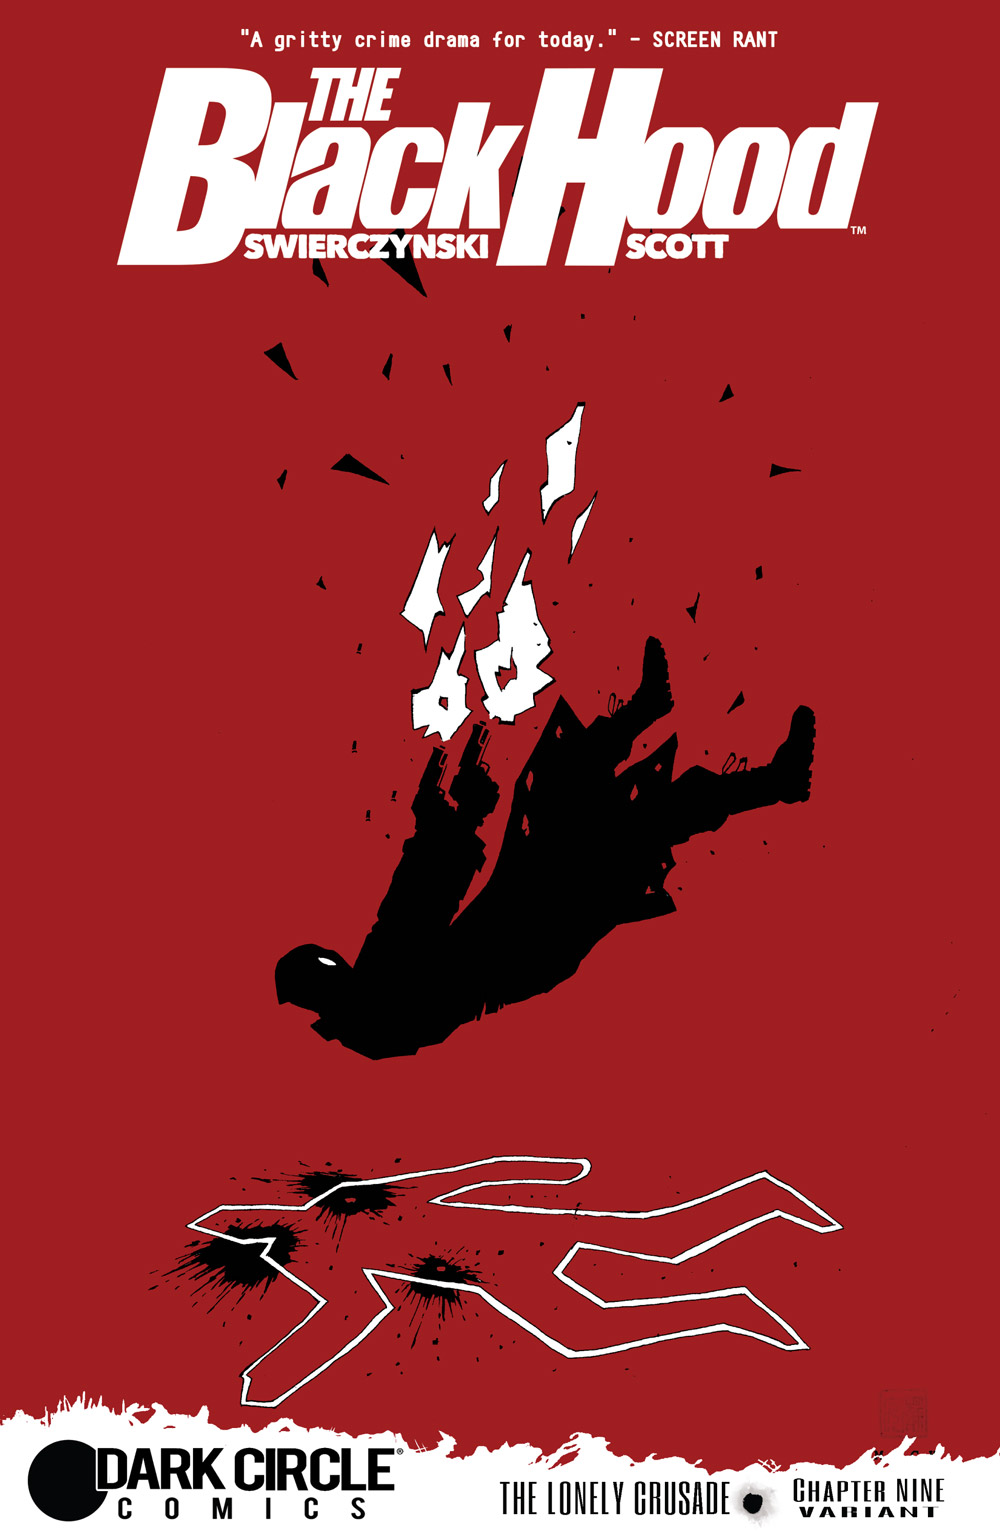 The Black Hood #9 Cover